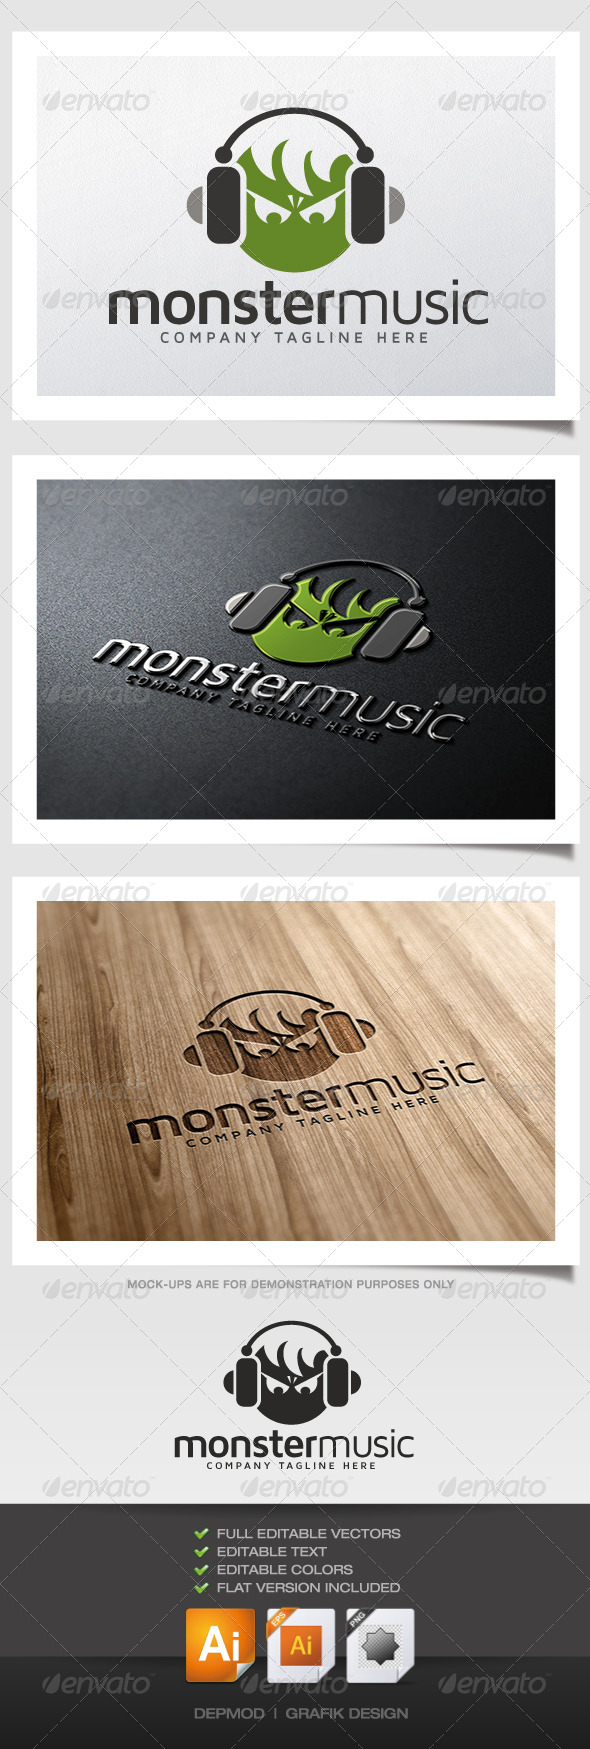 Monster Music Logo - Animals Logo Templates